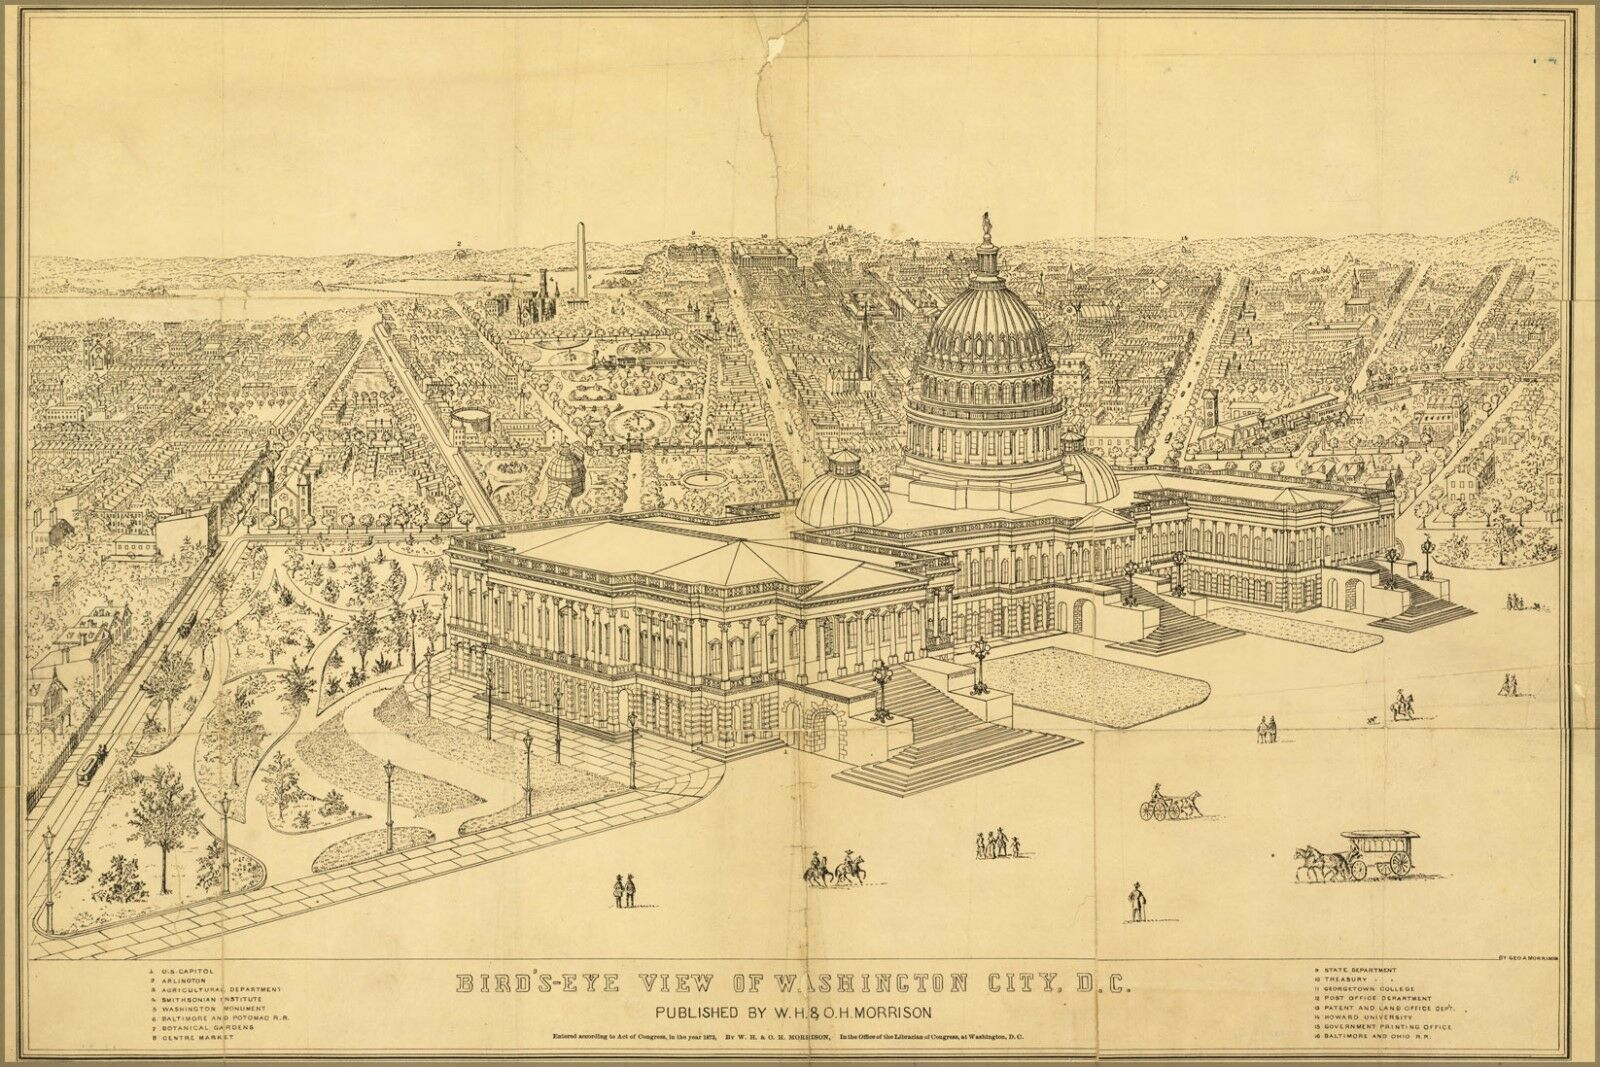 Poster, Many Größes; Birdseye View Map Of Washington D.C. 1872